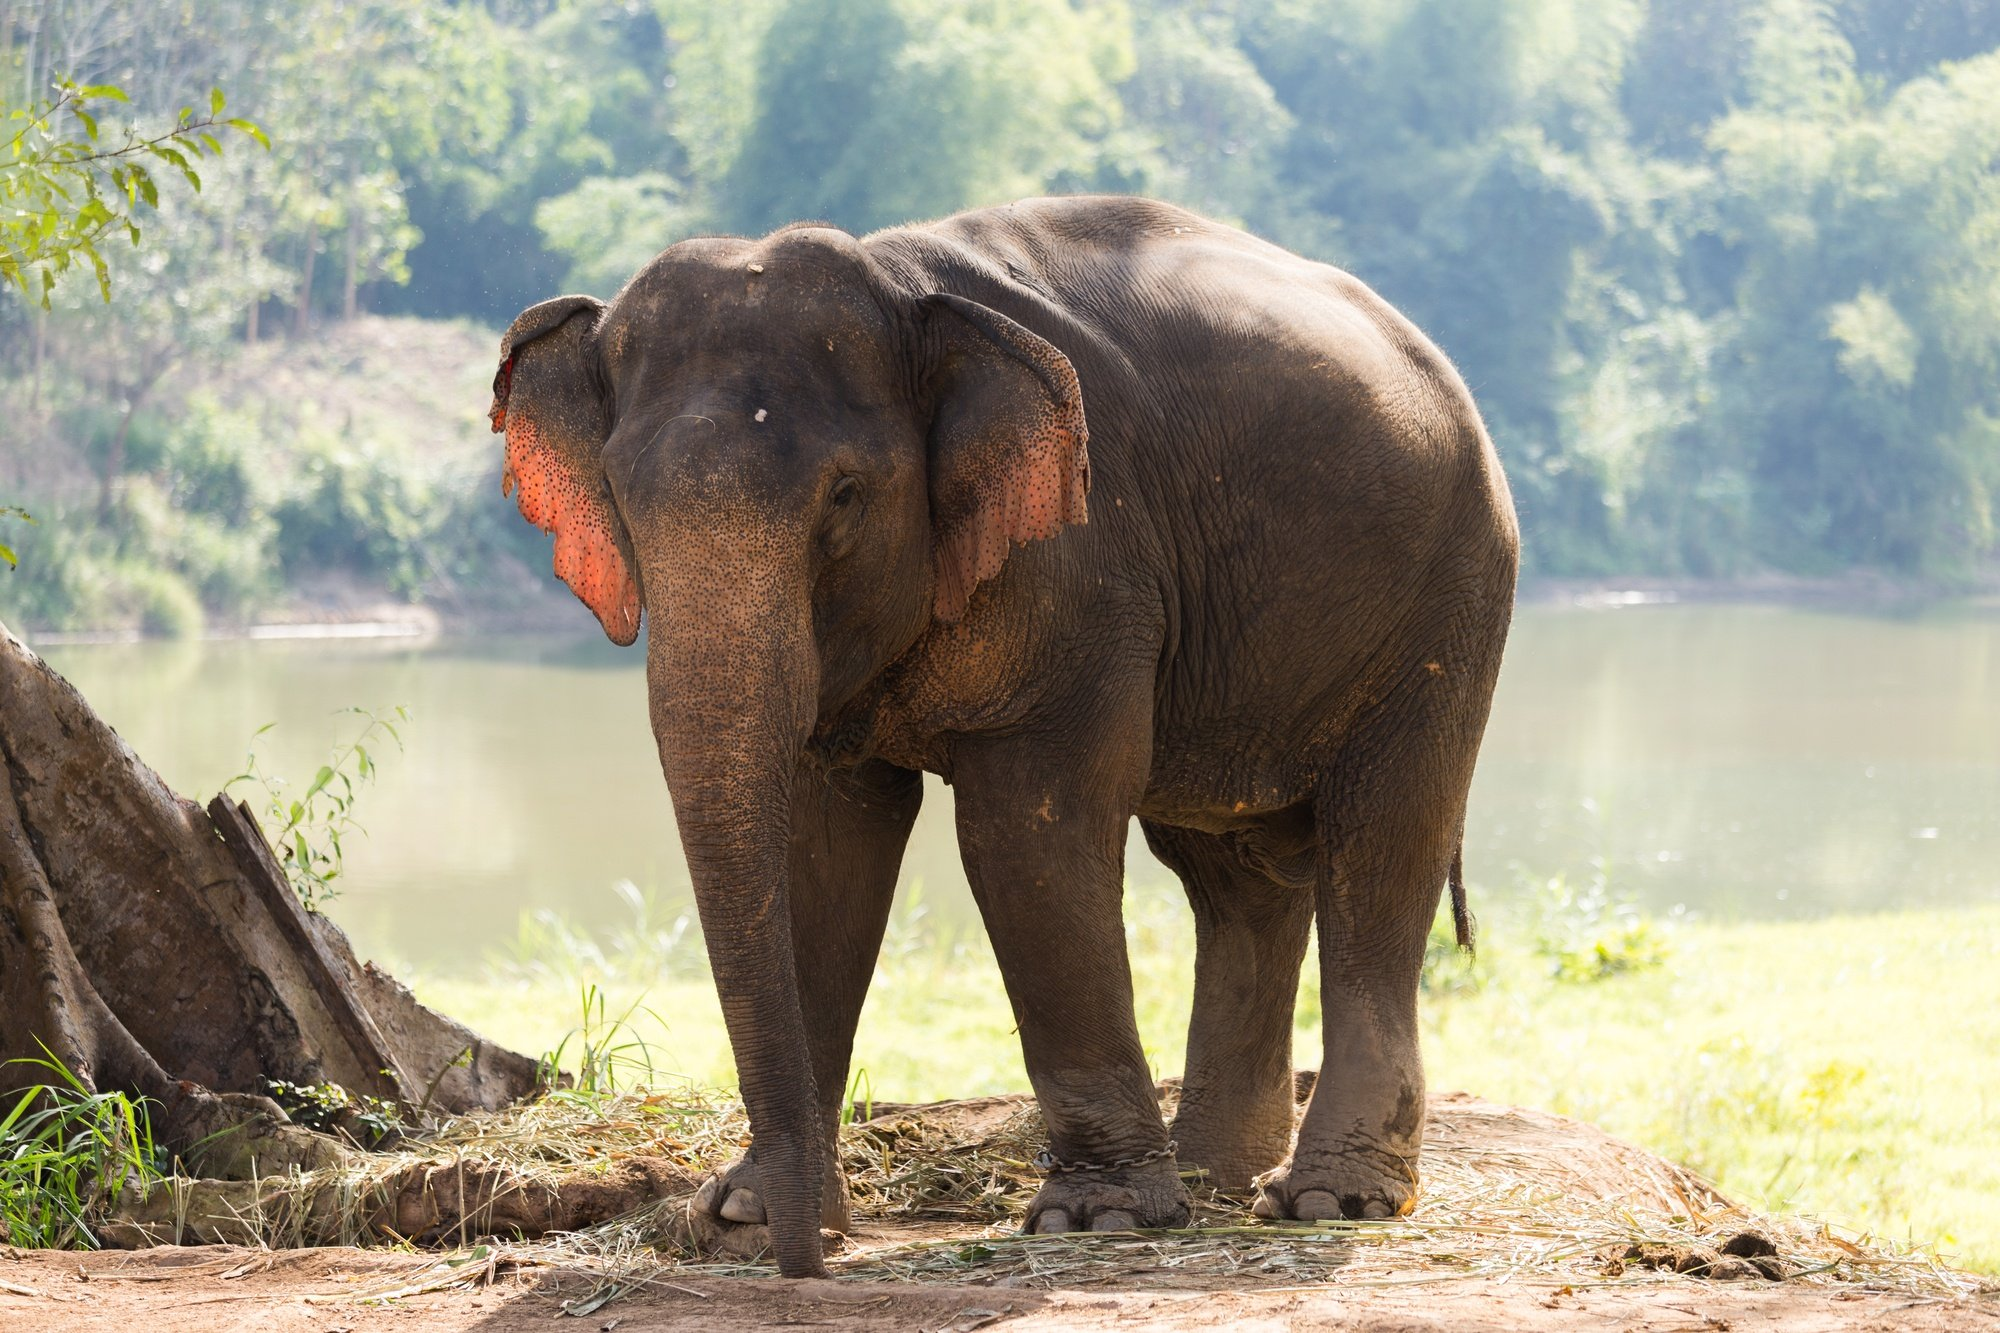 The elephant is the National Animal of Laos